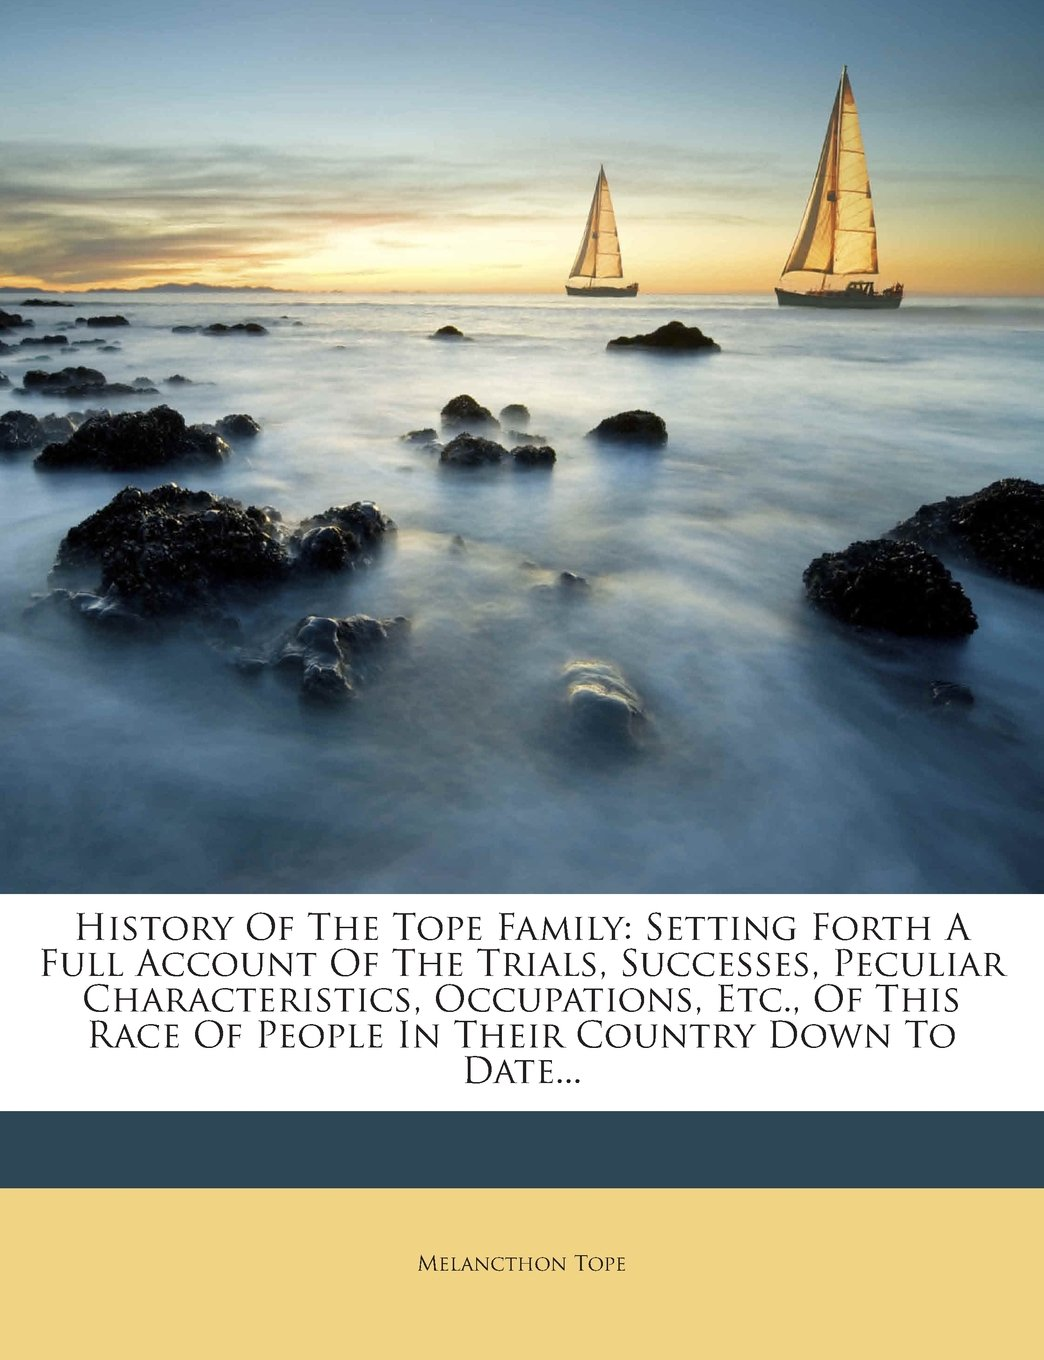 History Of The Tope Family: Setting Forth A Full Account Of The Trials, Successes, Peculiar Characteristics, Occupations, Etc., Of This Race Of People In Their Country Down To Date... pdf epub